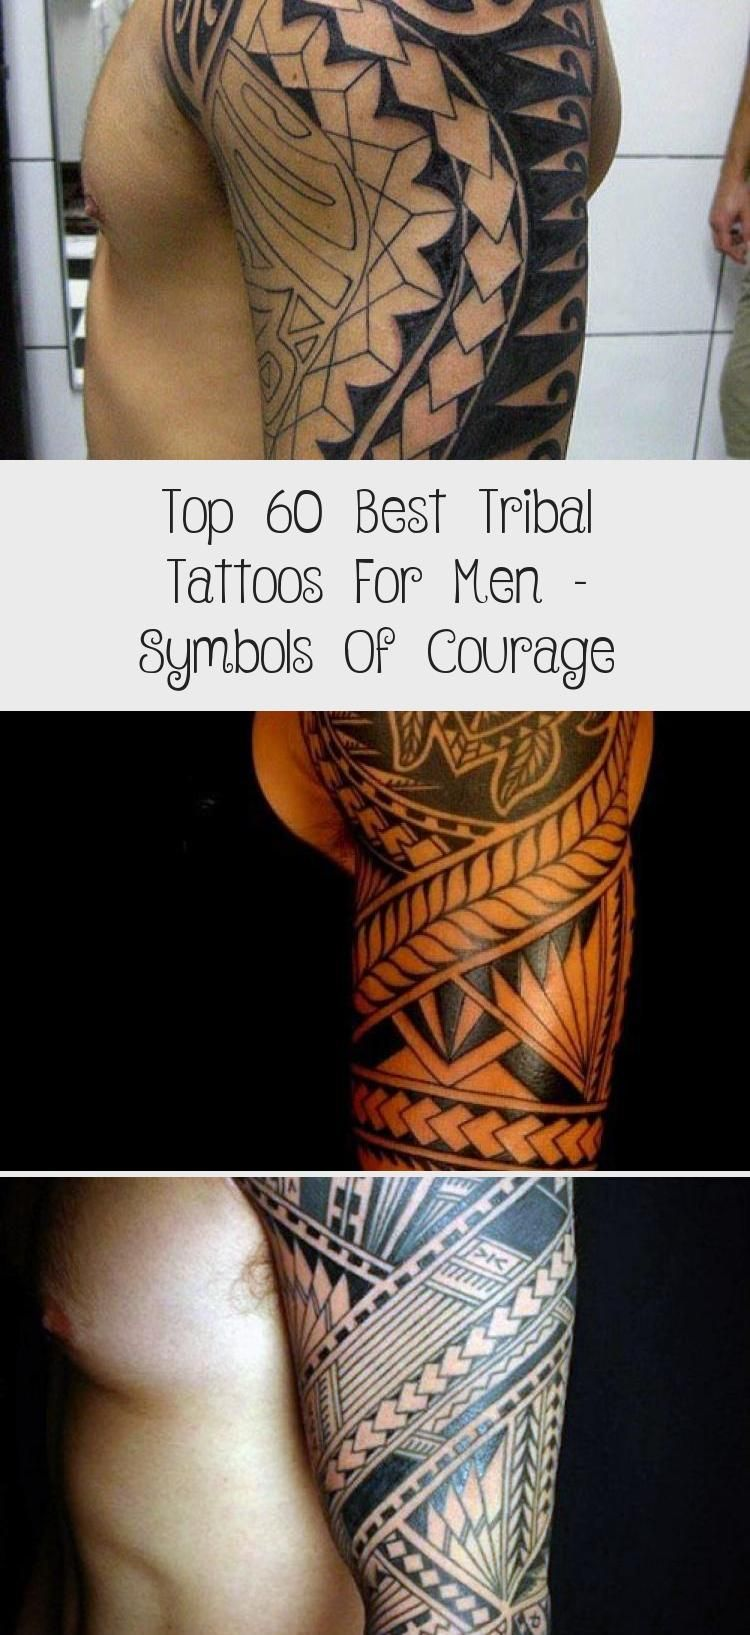 Top 60 Best Tribal Tattoos For Men  Symbols Of Courage  Tattoos  Top 60 Best Tribal Tattoos For Men  Symbols Of Courage